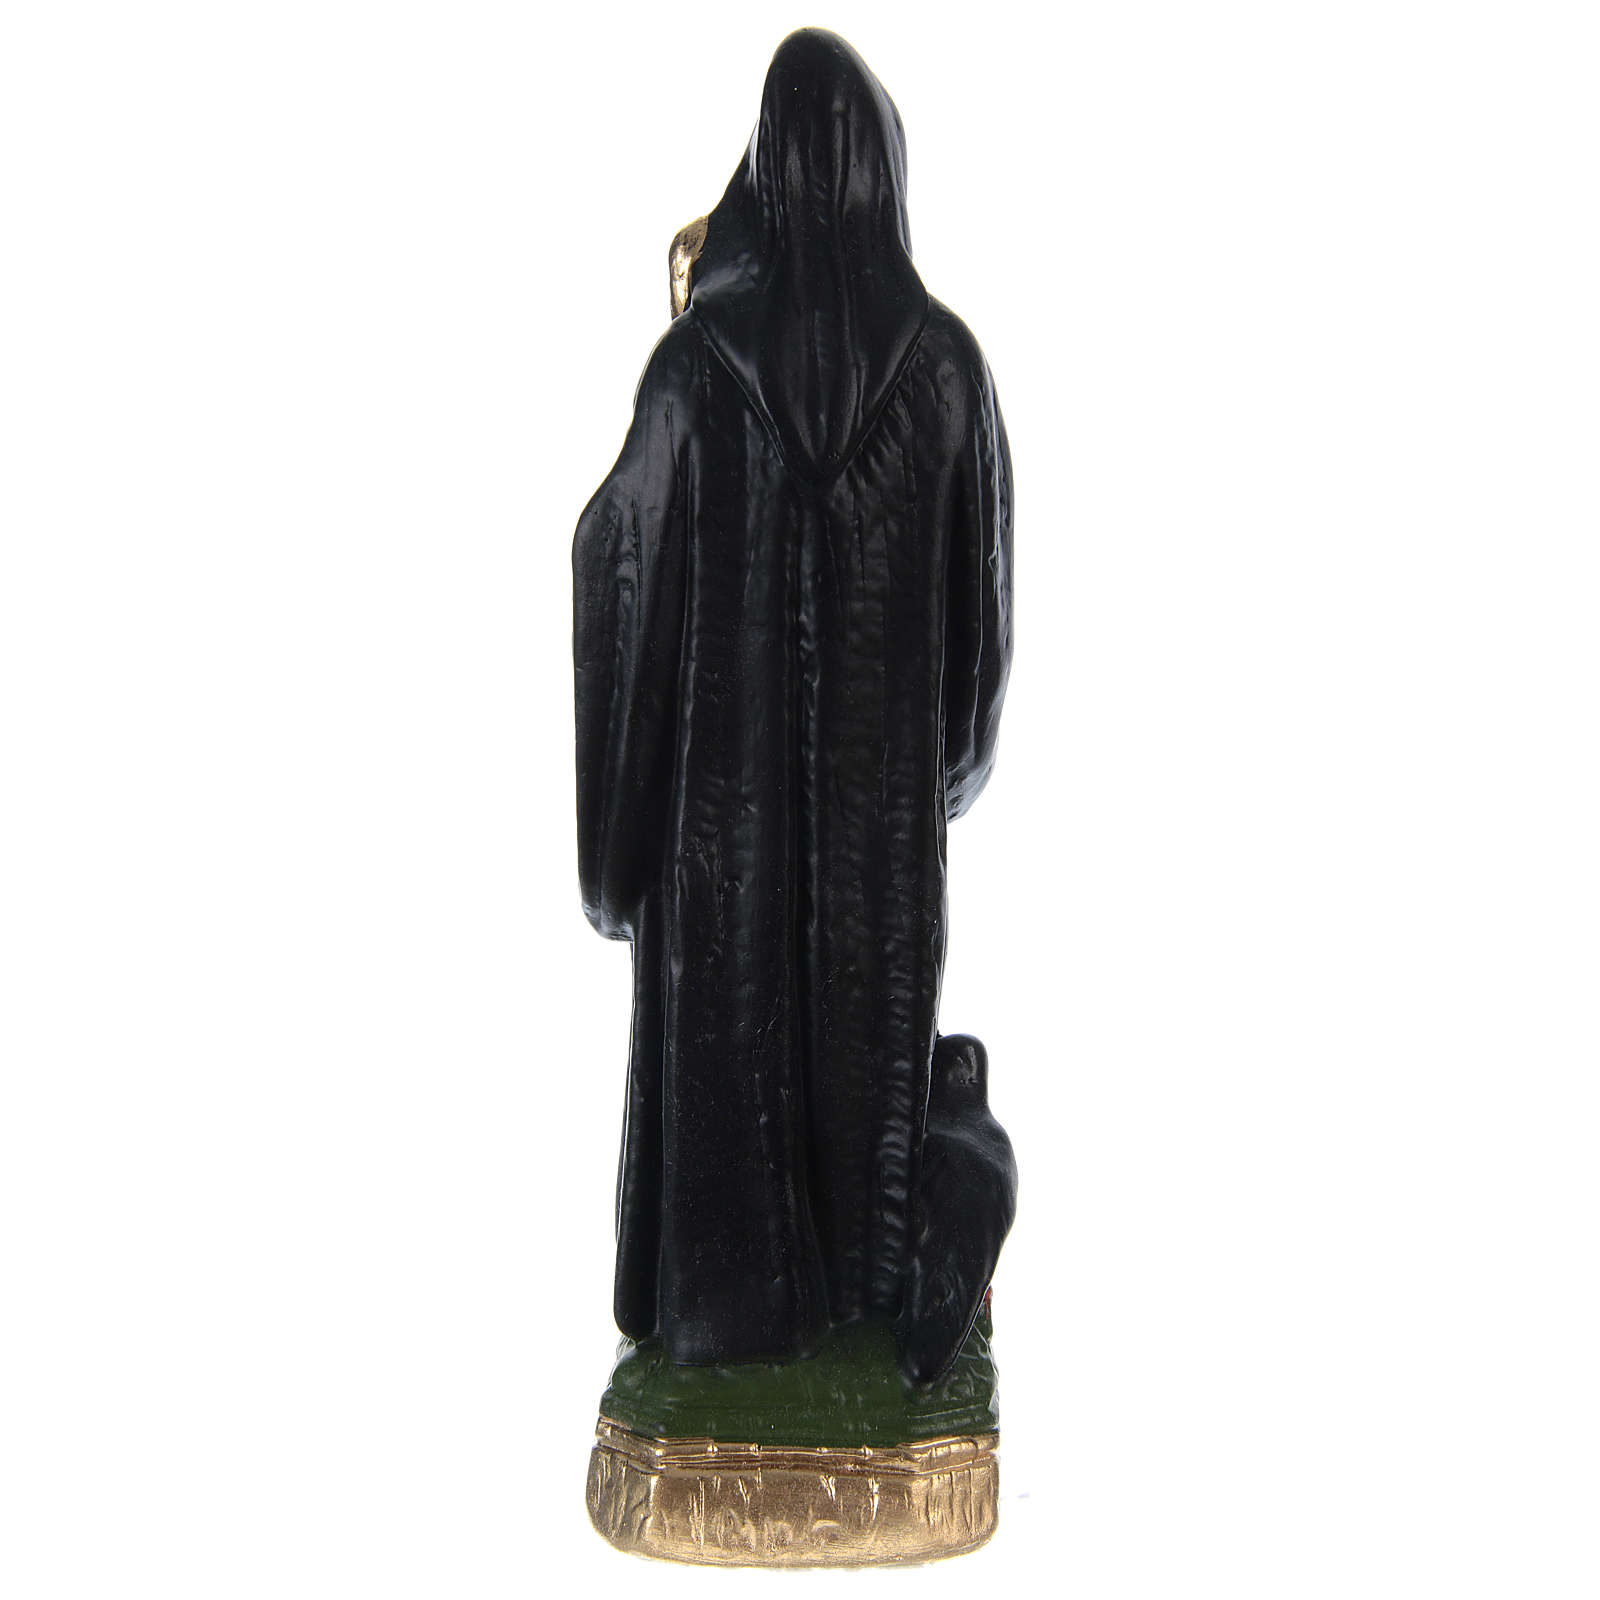 Saint Bernadette 20 cm Statue in painted plaster 4